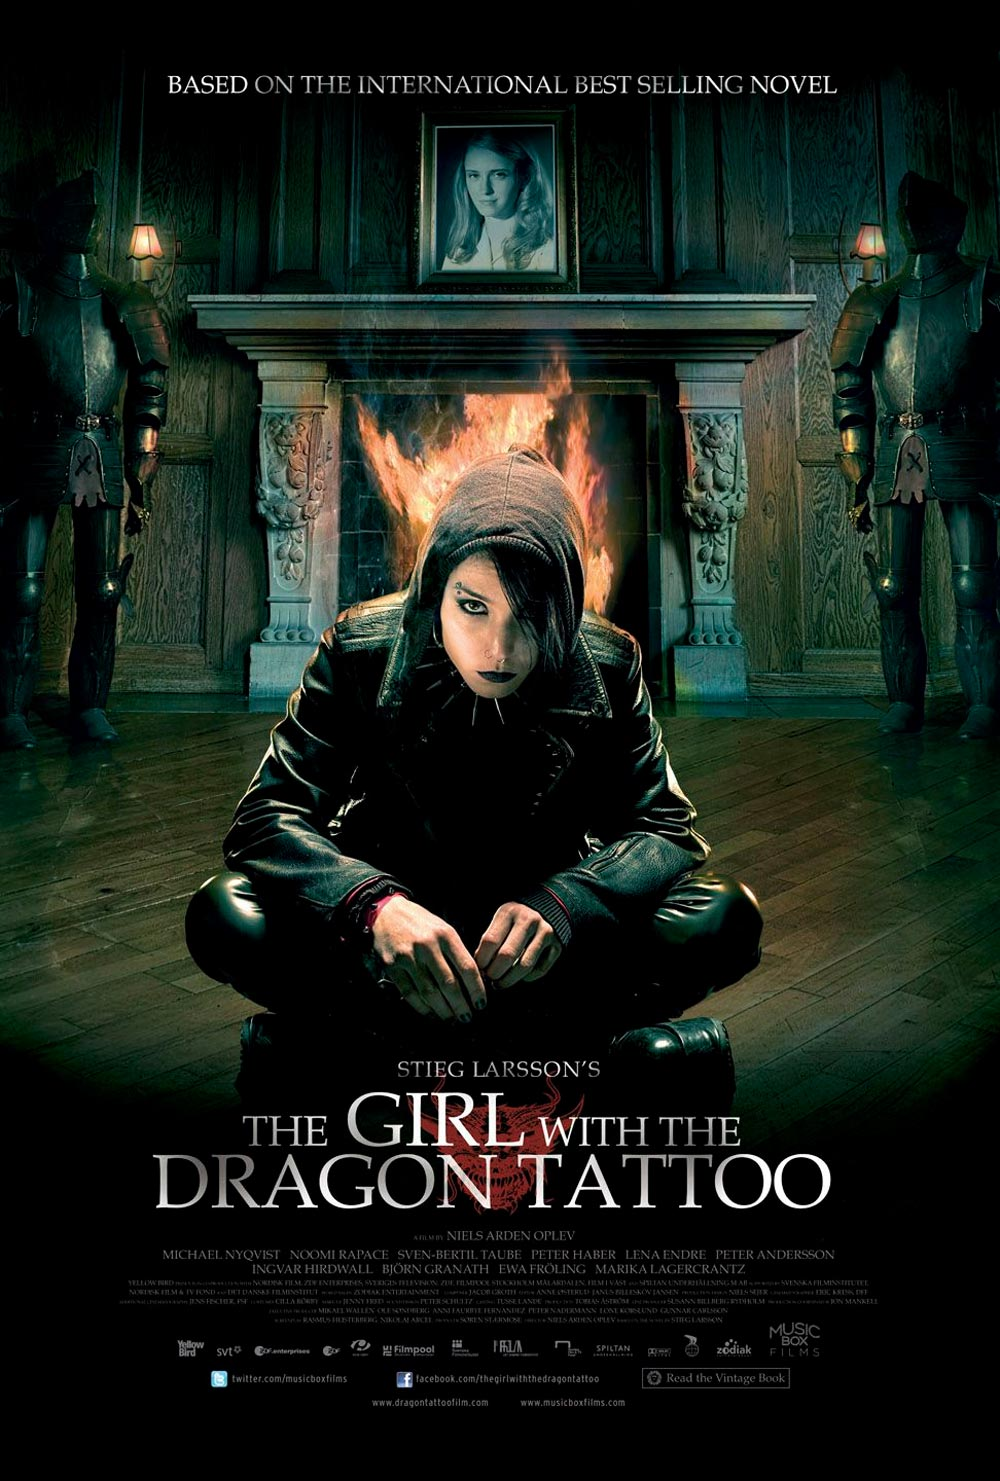 The-Girl-with-the-Dragon-Tattoo_poster.jpg